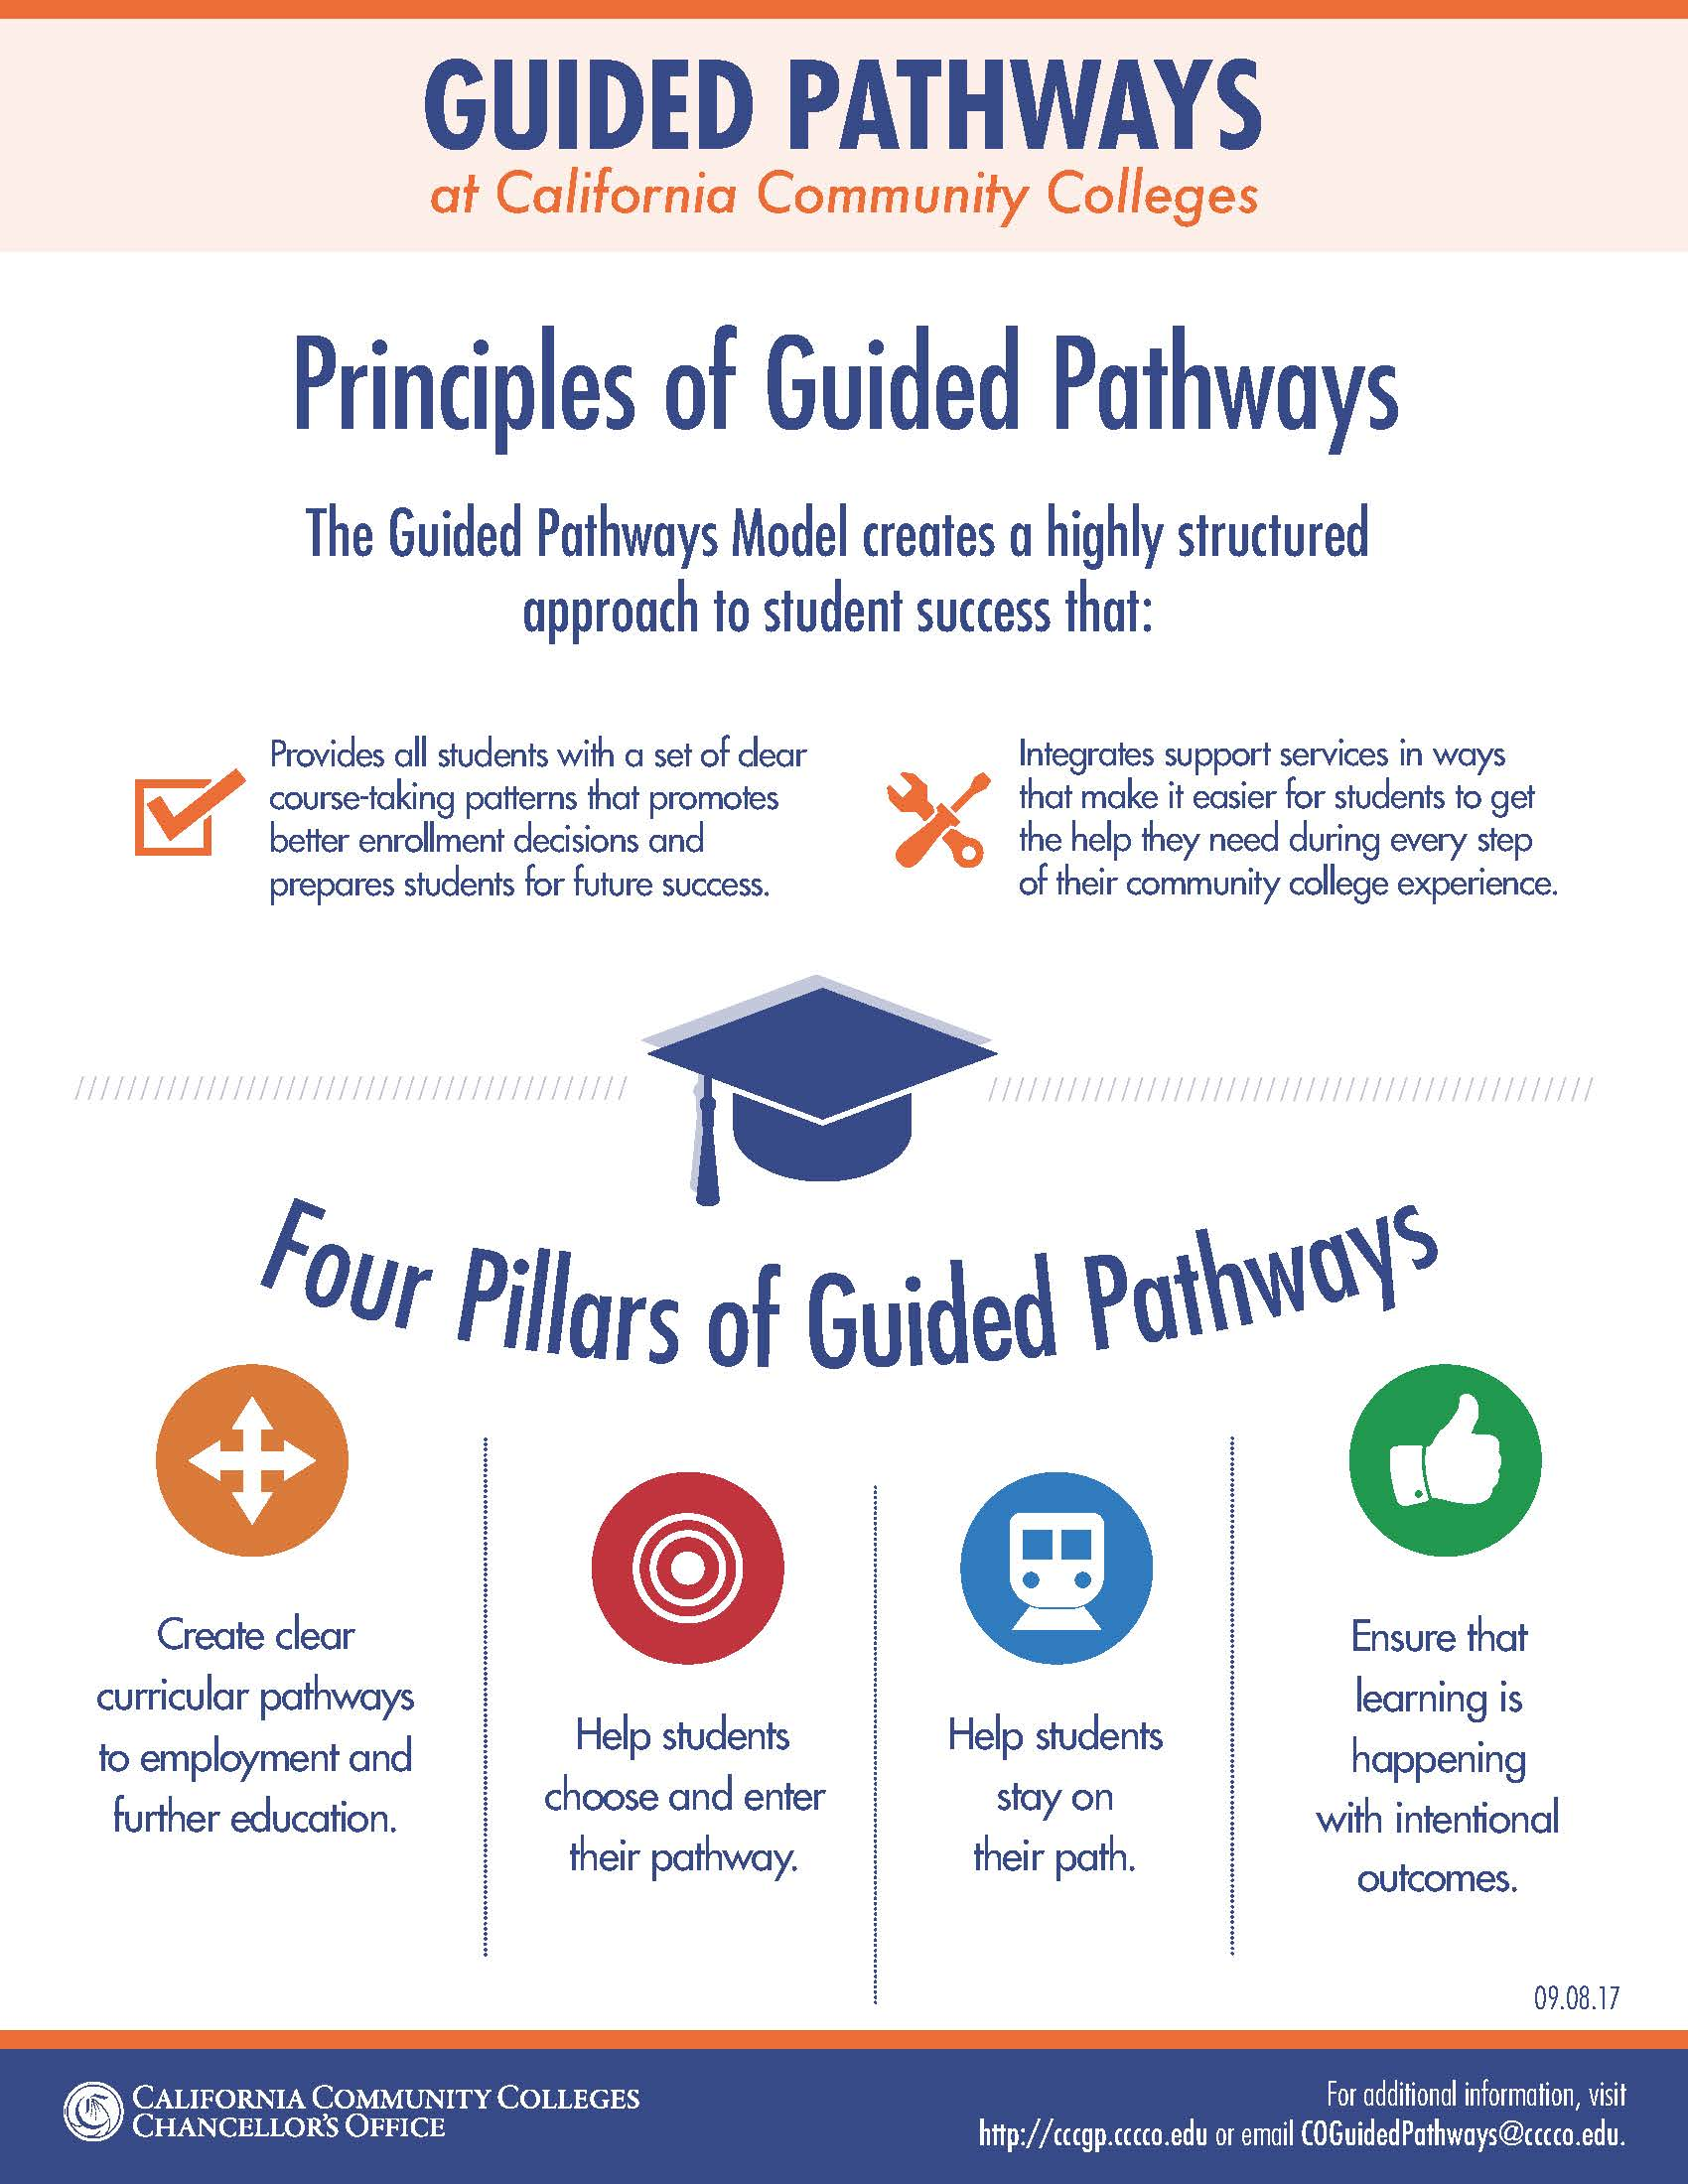 description of the four pillars of guided pathways